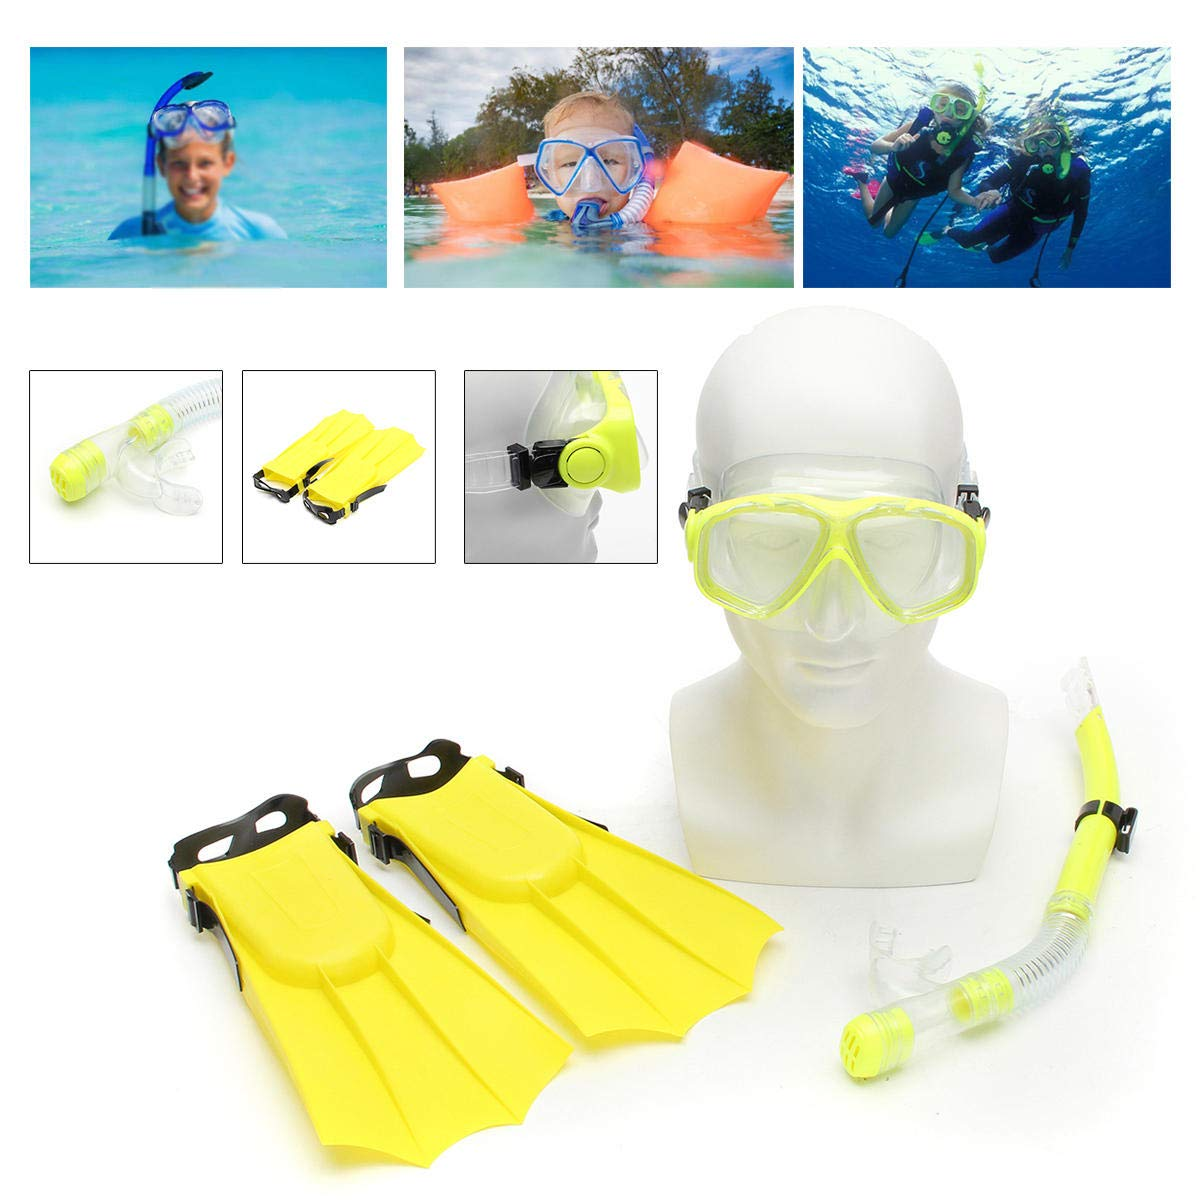 Shop Sport Kid Snorkel Mask Scuba Goggles + Breathing Tube+ Webbed Feet Swimming Diving Set - Yellow by Shop Sport (Image #2)